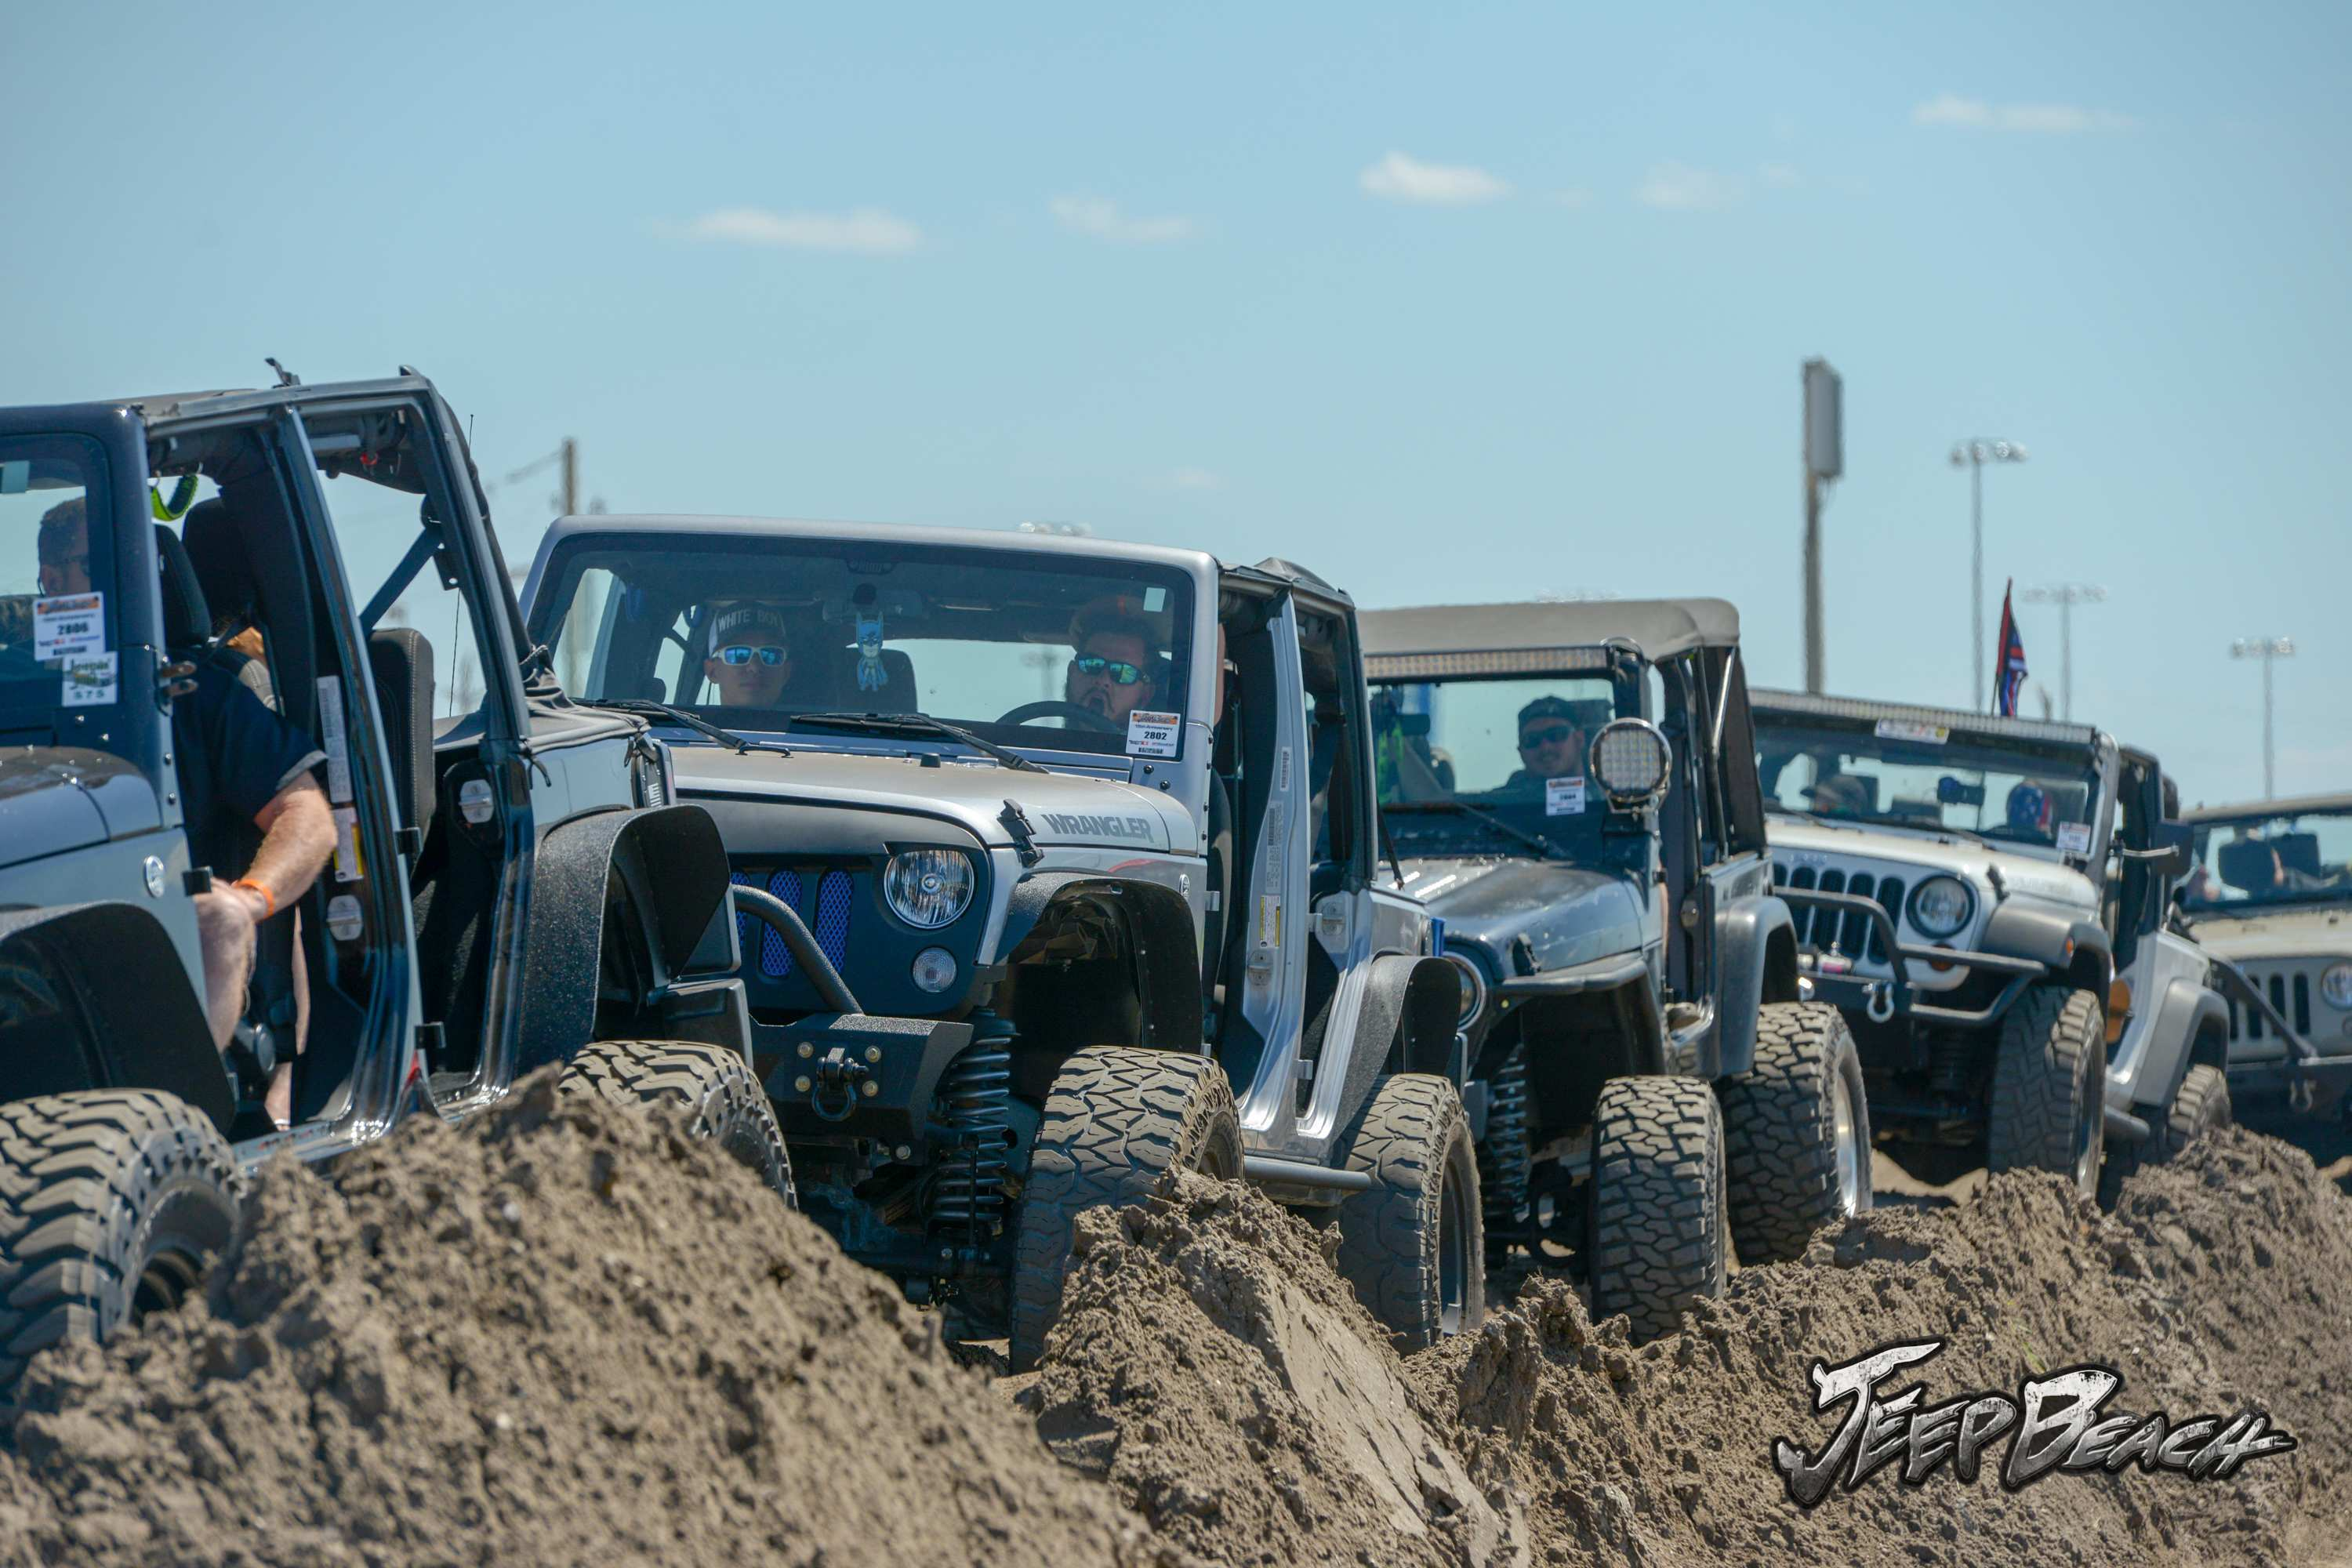 65 All New Jeep Beach Daytona 2020 Picture